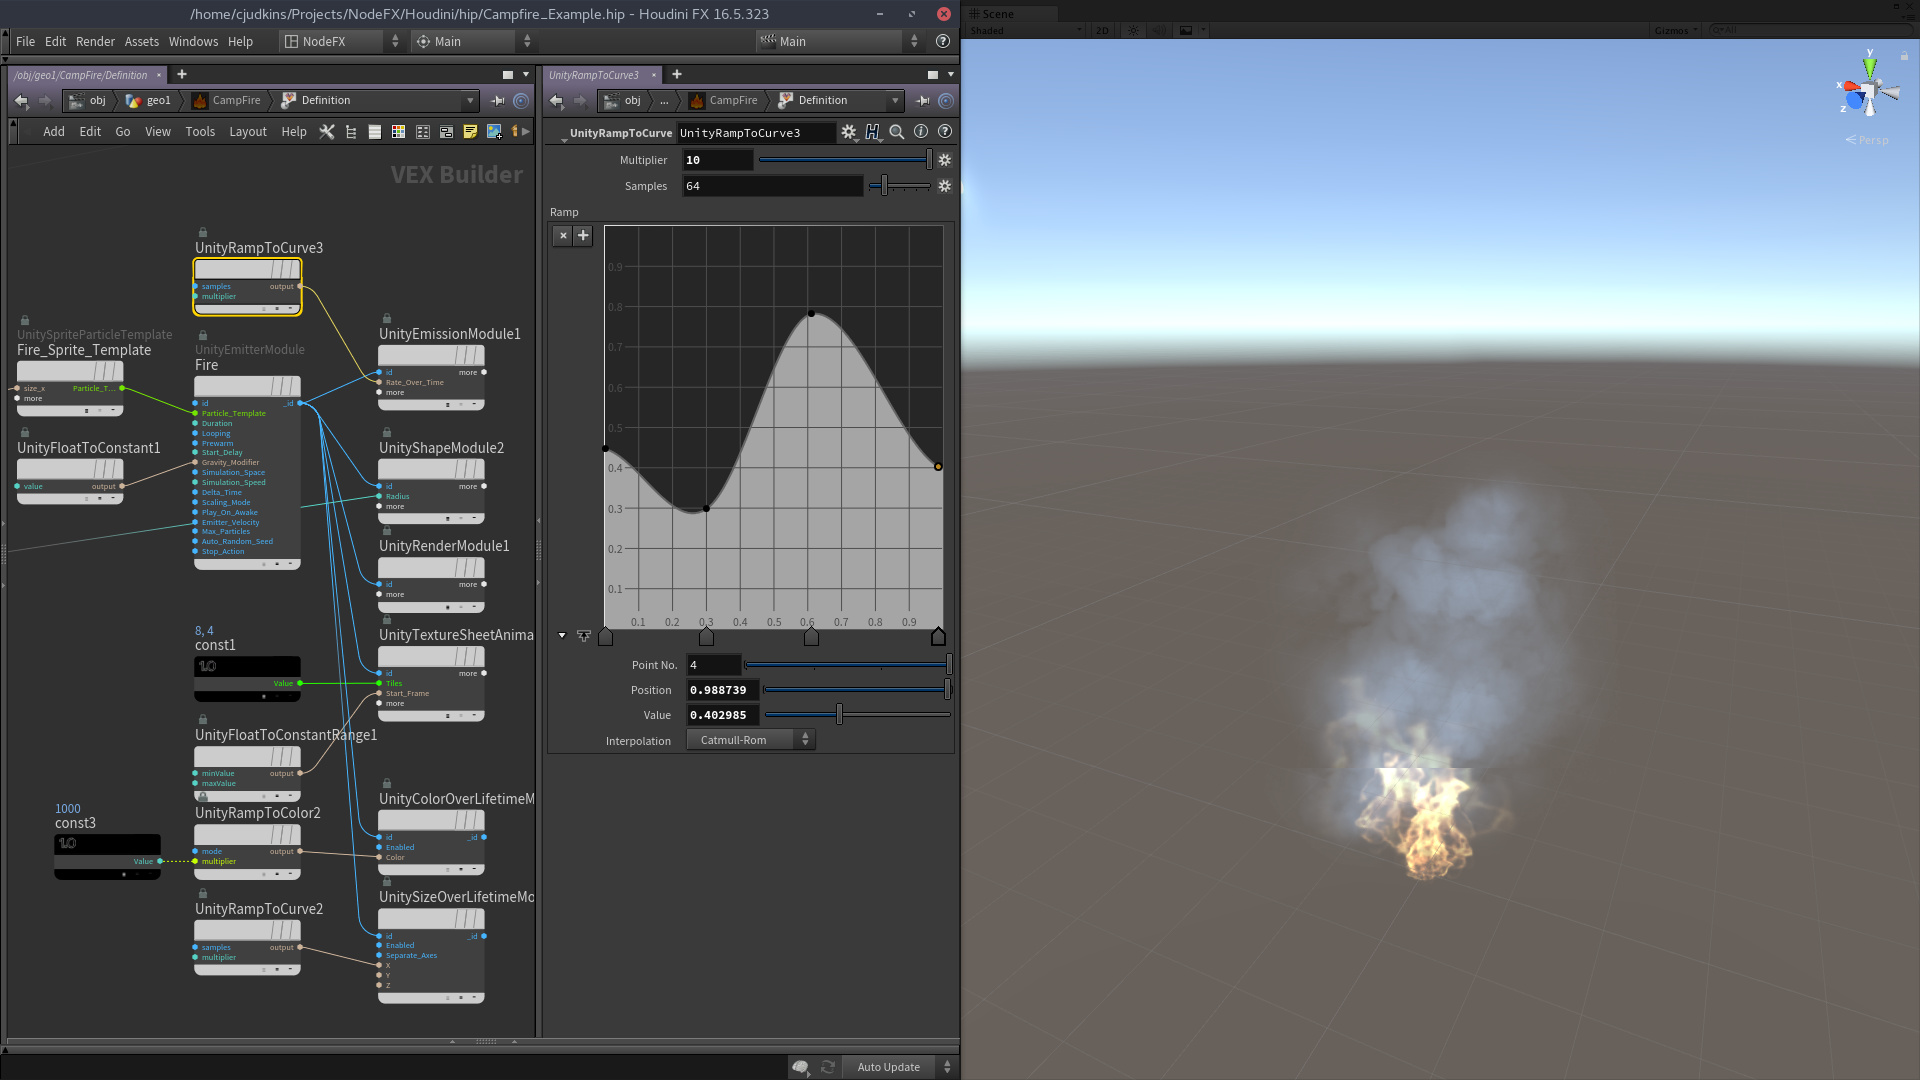 Creating Particle Systems in Unity using Houdini - Real Time VFX